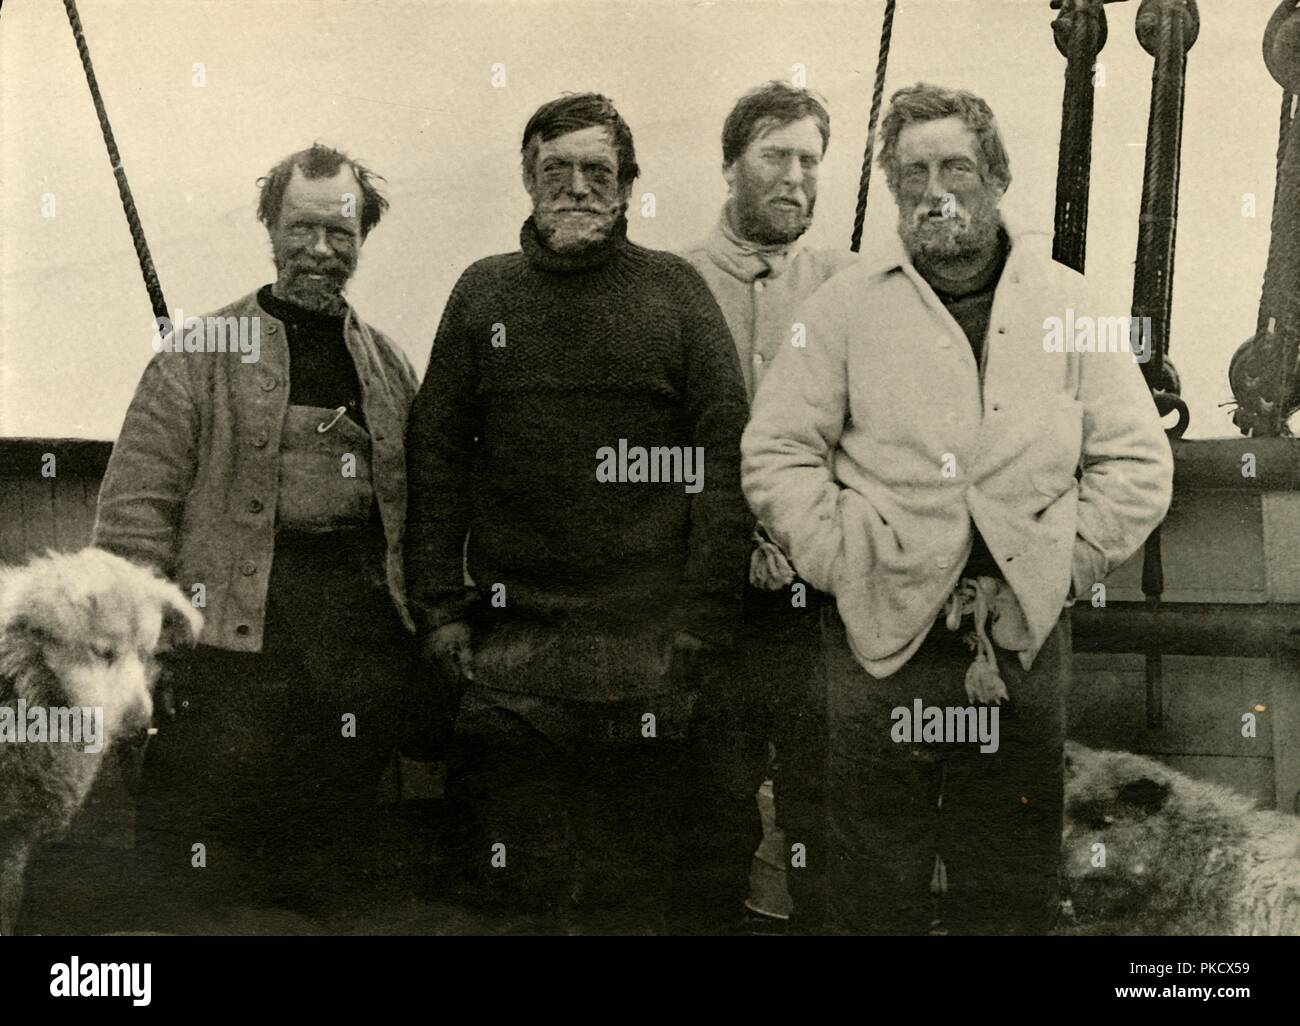 'The Southern Party on board the Nimrod.', 1909. Expedition members Frank Wild, Ernest Shackleton, Lieutenant Colonel Eric Marshall and Captain Jameson Adams. Anglo-Irish explorer Ernest Shackleton (1874-1922) made three expeditions to the Antarctic. During the second expedition, 1907-1909, he and three companions established a new record, Farthest South latitude at 88°S, only 97 geographical miles (112 statute miles, or 180 km) from the South Pole, the largest advance to the pole in exploration history. Members of his team also climbed Mount Erebus, the most active volcano in the Antarct - Stock Image